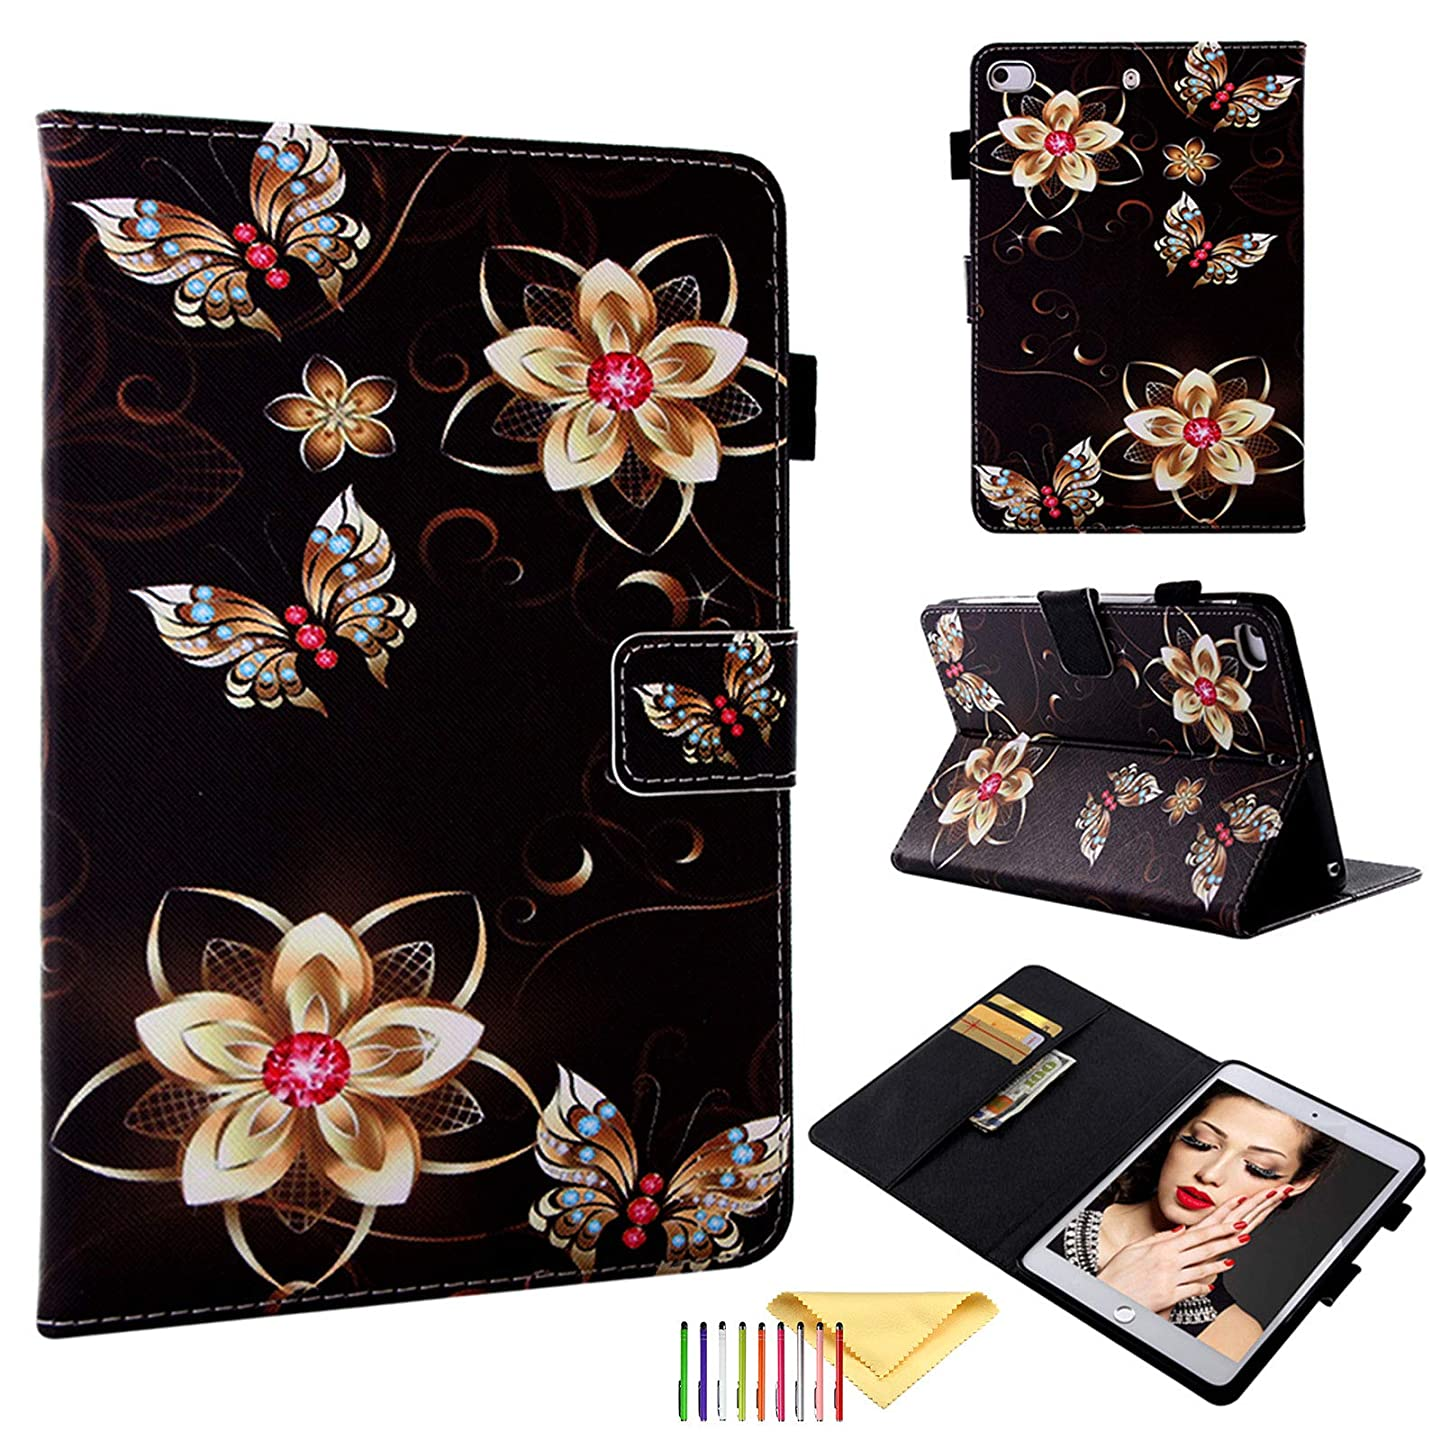 Universal Case for iPad Mini 5 4 3 2 1, Cookk Colorful Pattern PU Leather Skinshell [Anto Sleep/Wake] [Pencil Holder] [Card Slots] Smart Cover for Apple Mini 7.9 Inch, Gold Flower